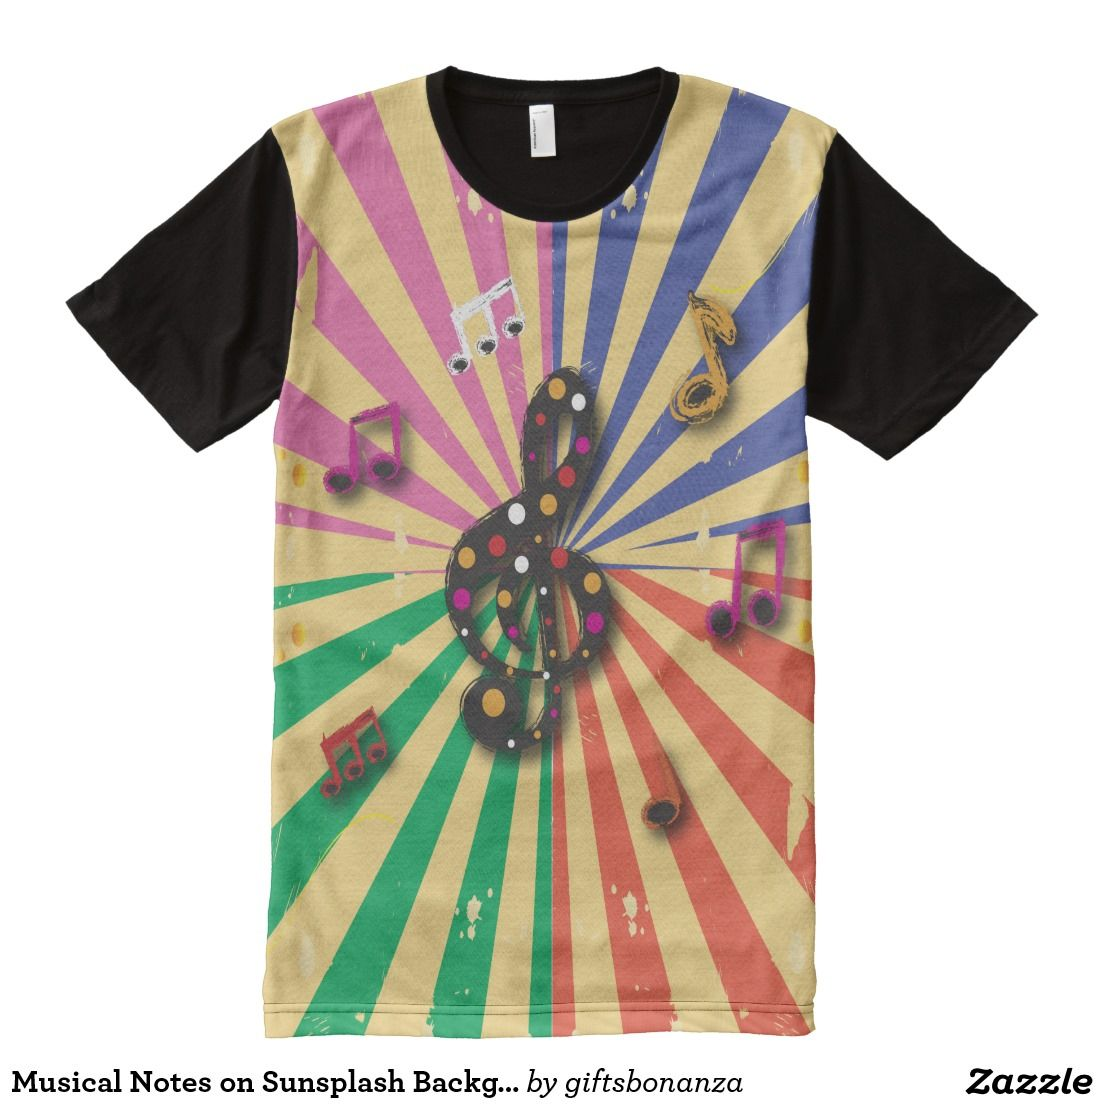 671569712 #Musical Notes on Sunsplash Background All Over Print Shirt @giftsbonanza